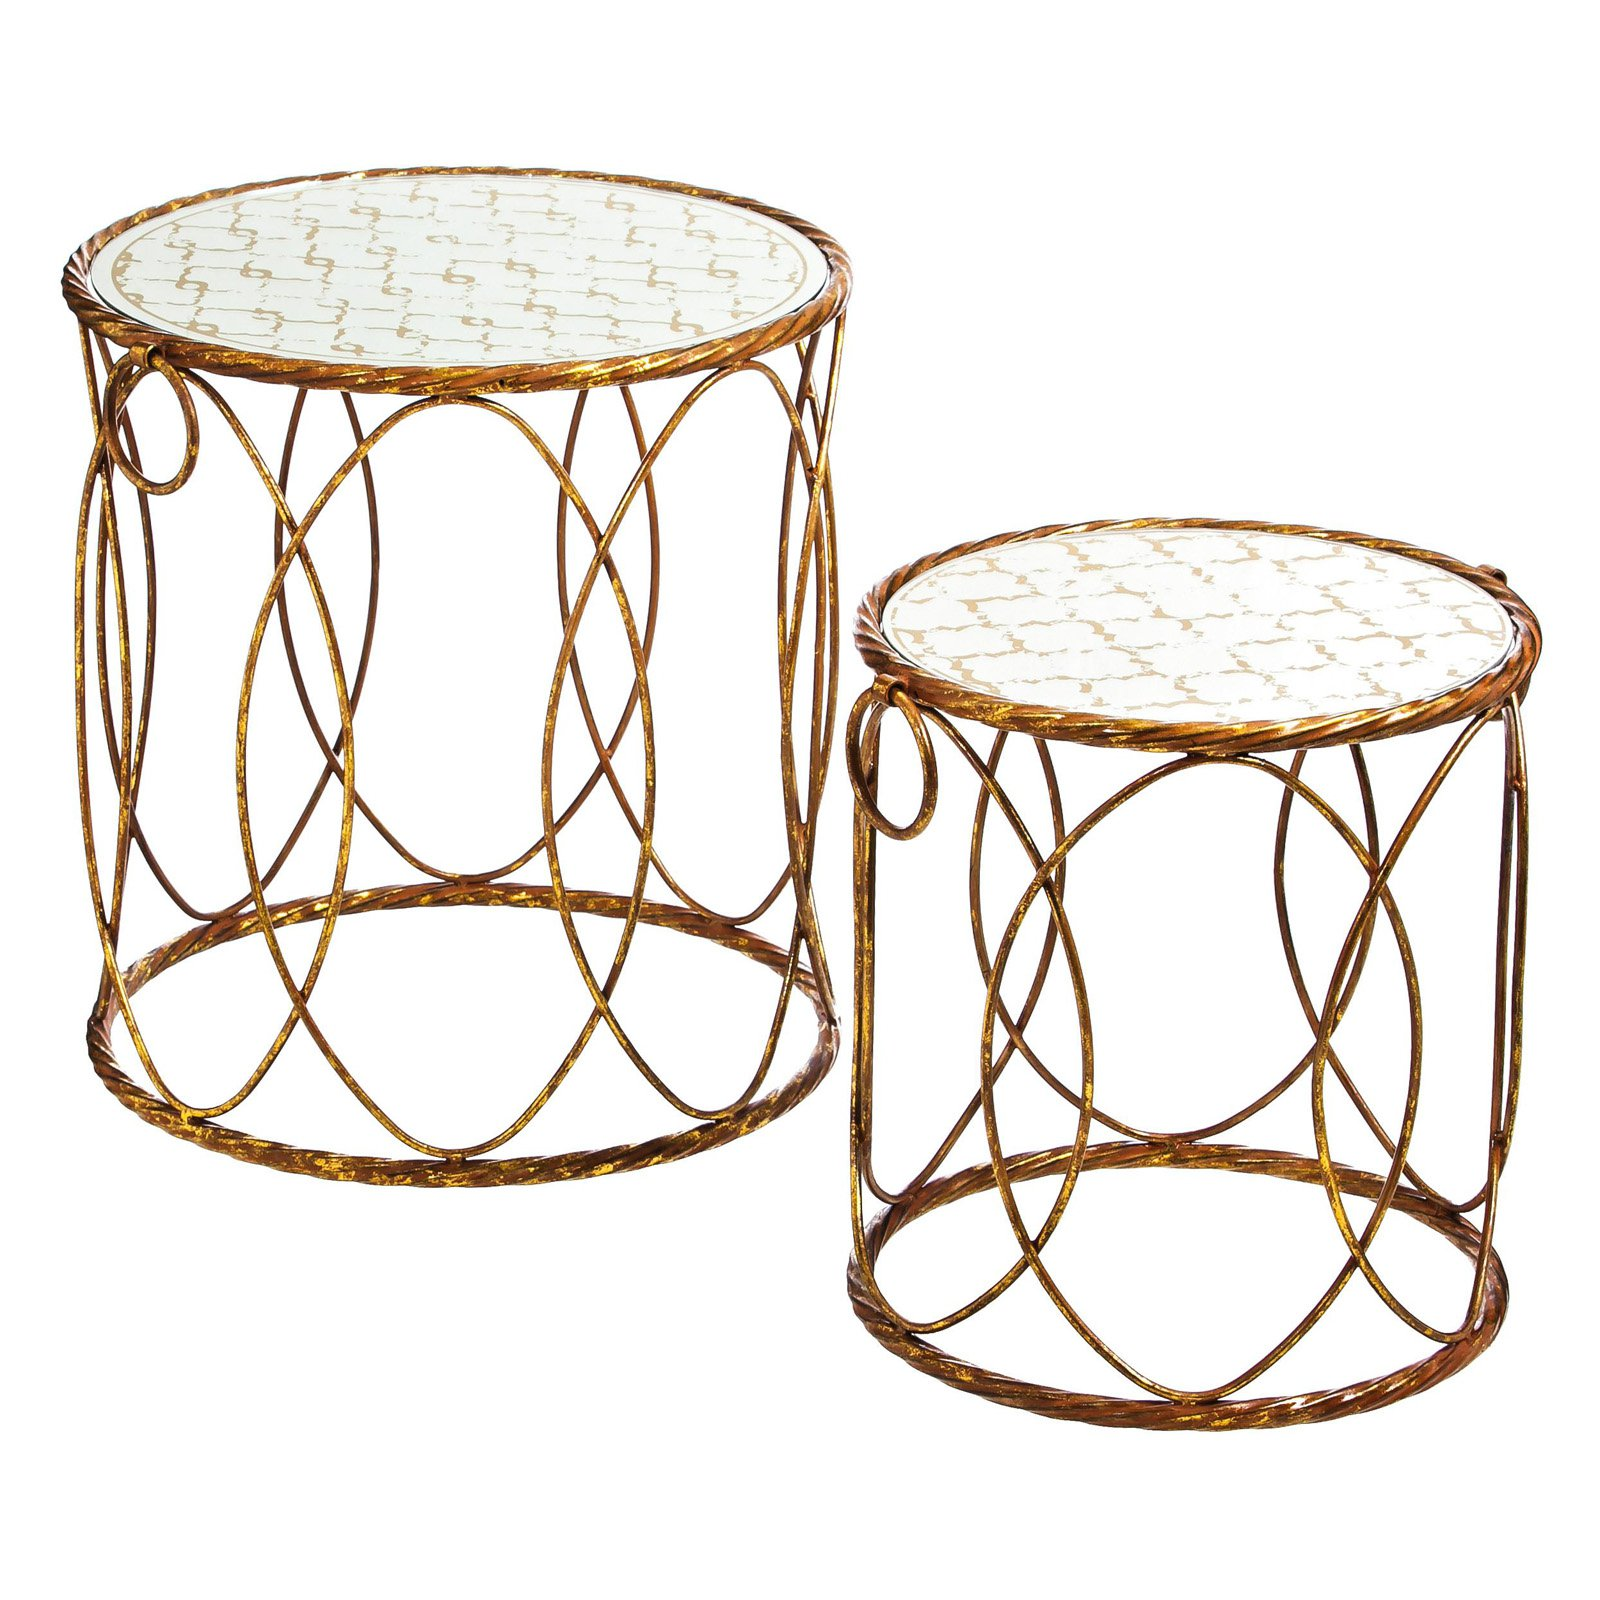 Evergreen Enterprises Gold Nested Set of 2 Metal Round Tables with Printed Mirror Top